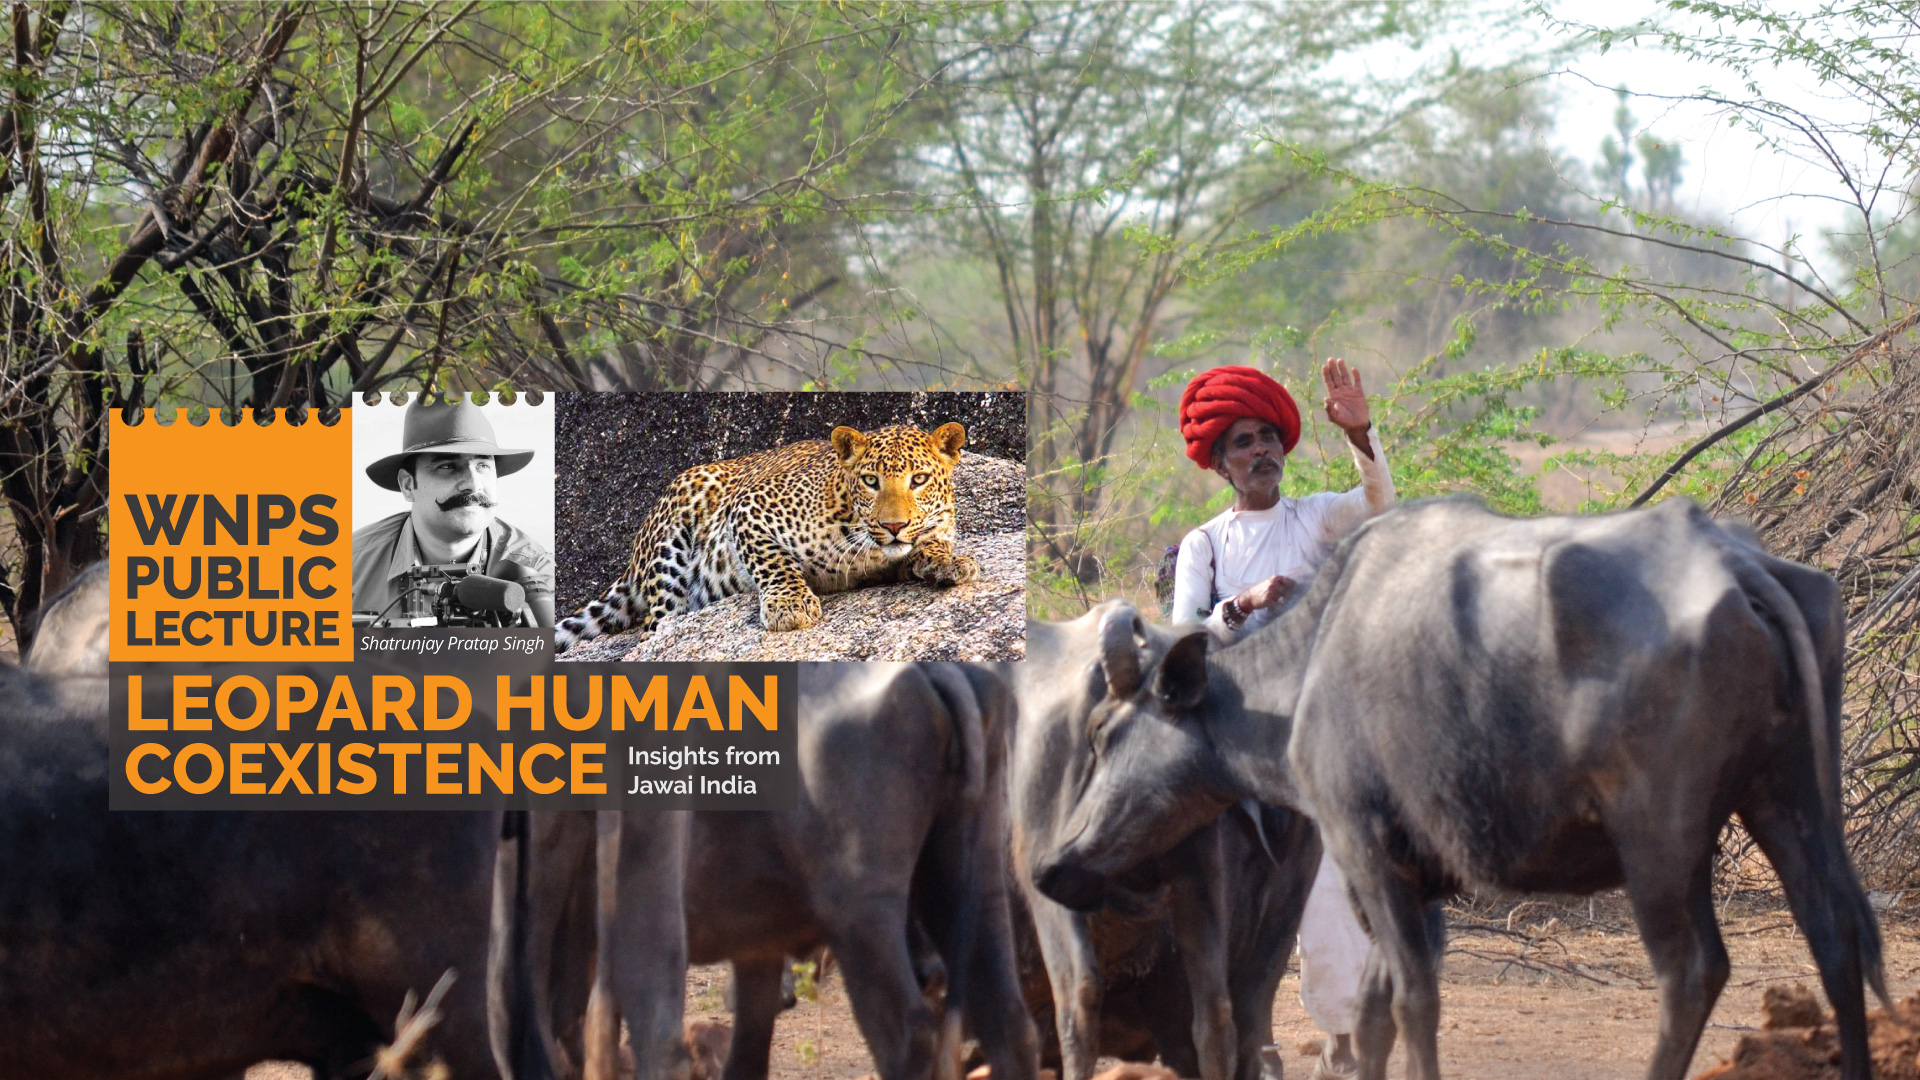 Leopard Human Coexistence